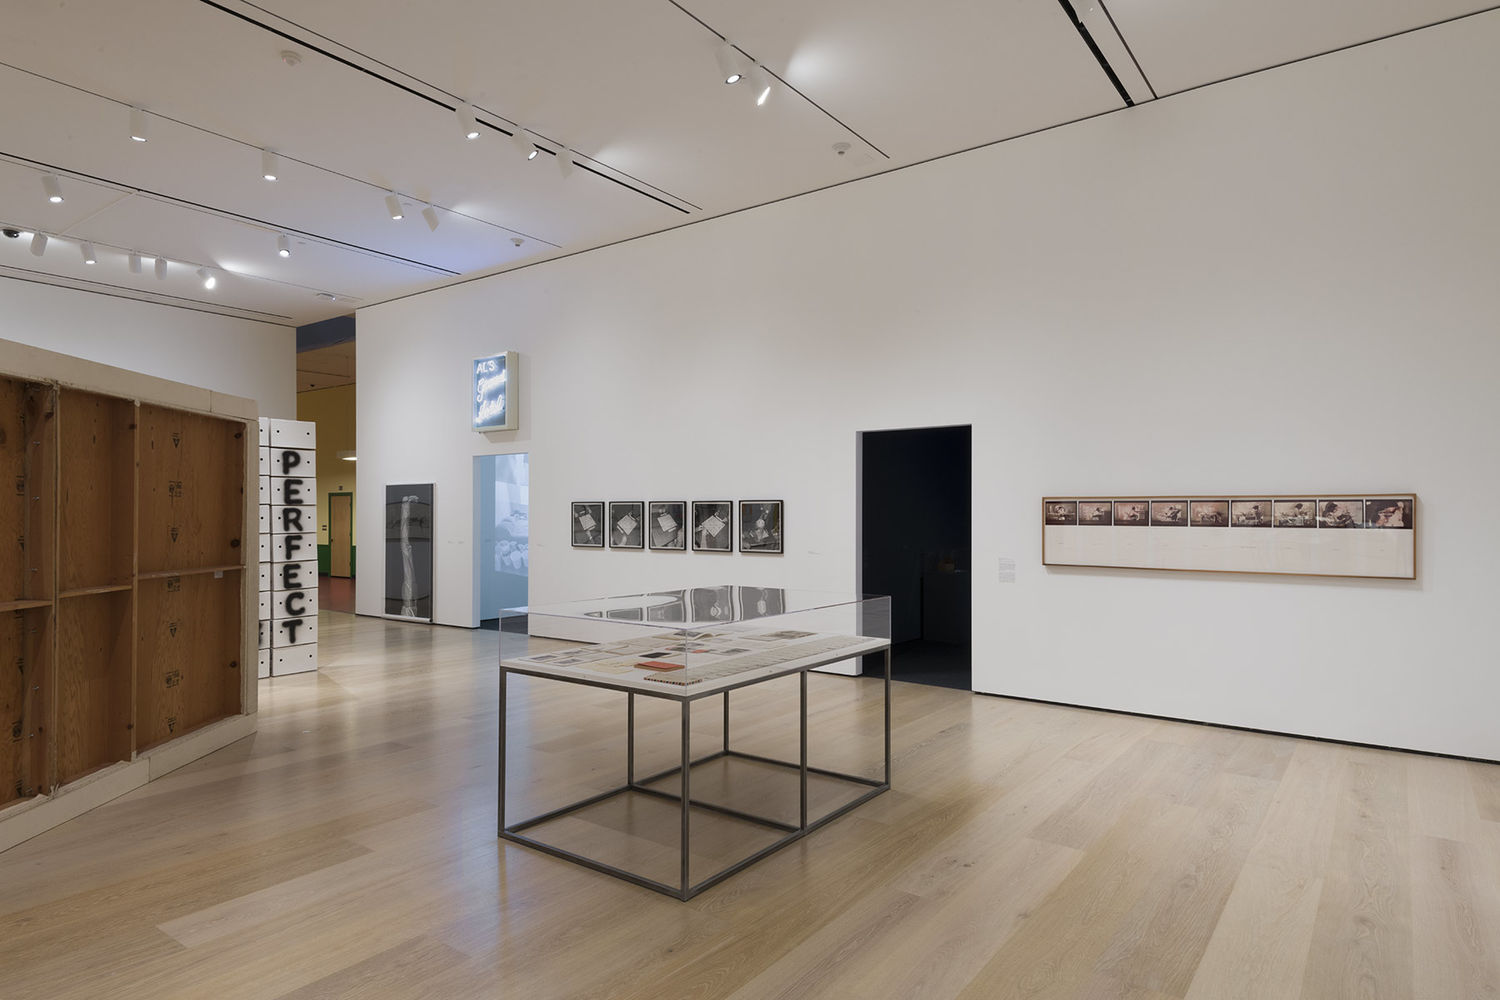 Allen Ruppersberg: Intellectual Property 1968–2018, installation view, Hammer Museum, Los Angeles, February 10–May 12, 2019. Photo: Jeff McLane